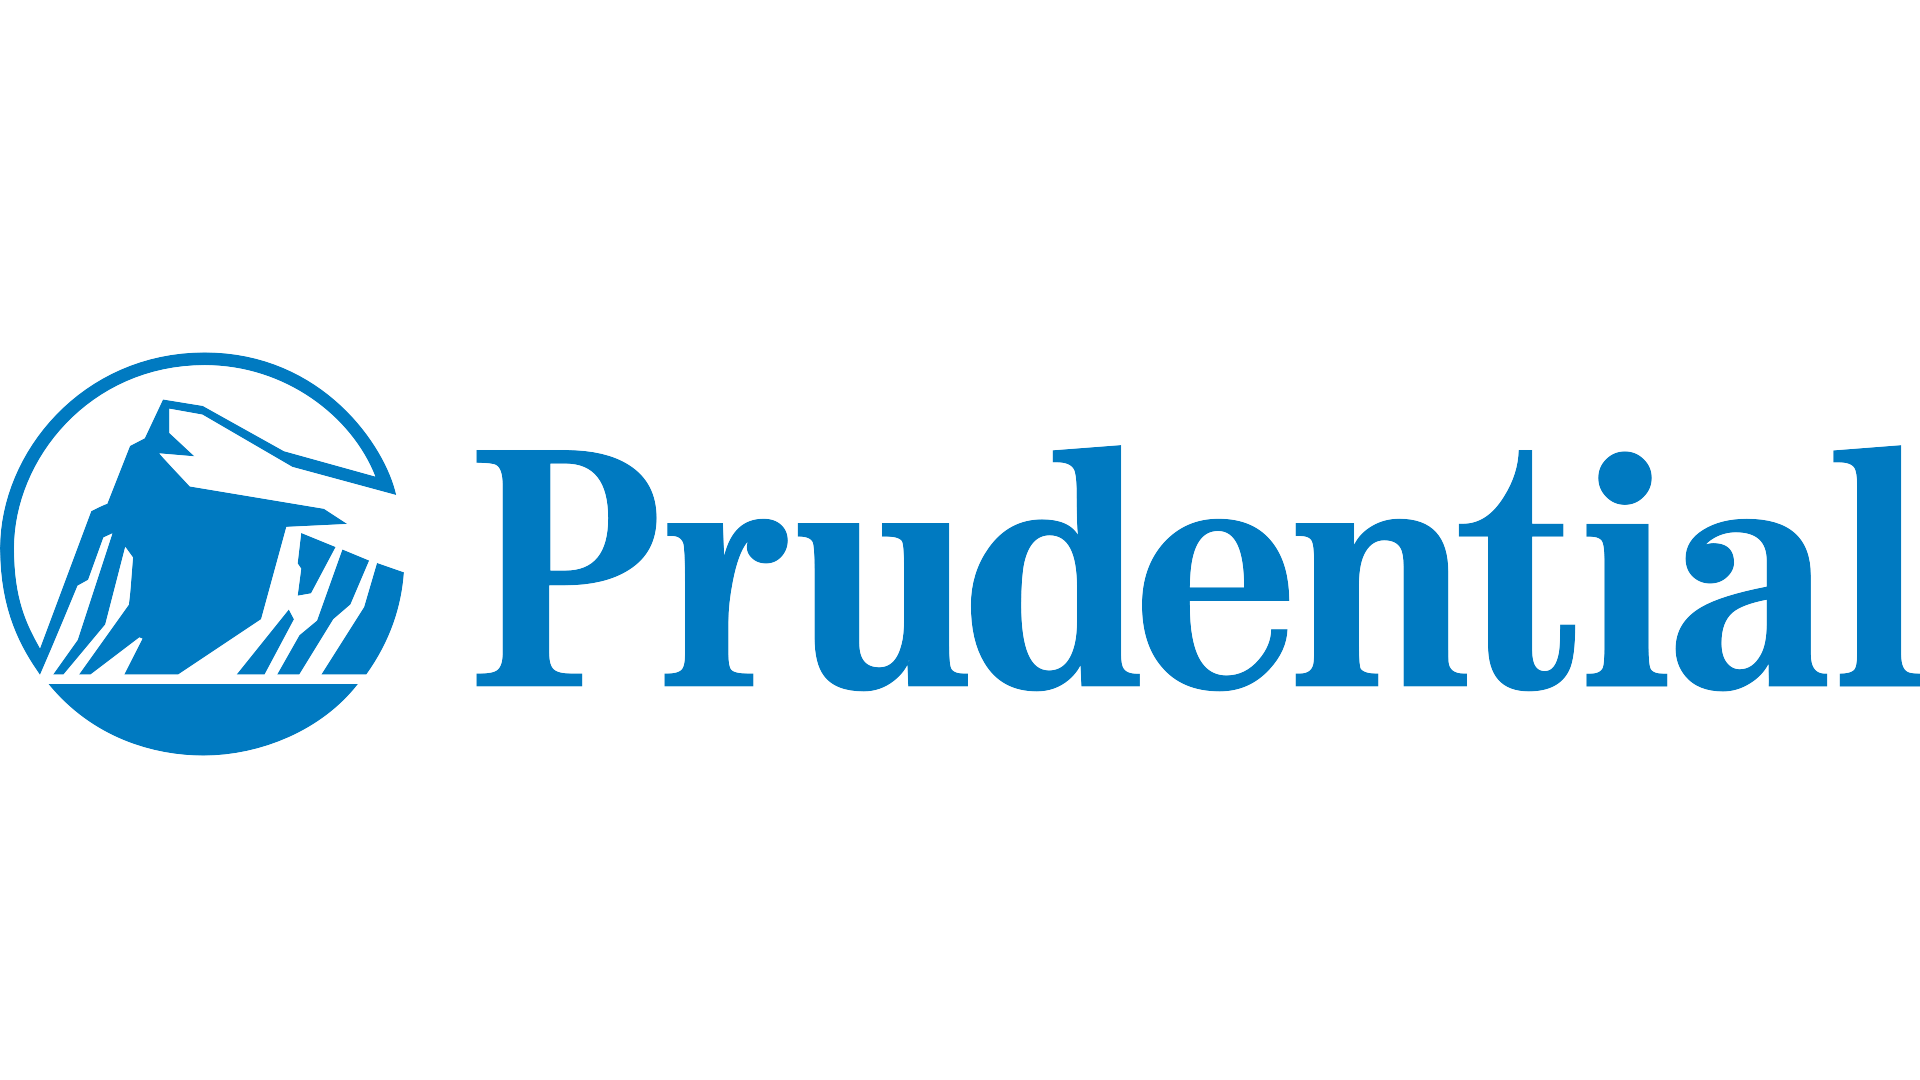 Watch the job video below to learn more about the career opening Our Work, Heart, and Soul at Prudential in Newark NJ,   Hartford CT,   Roseland NJ